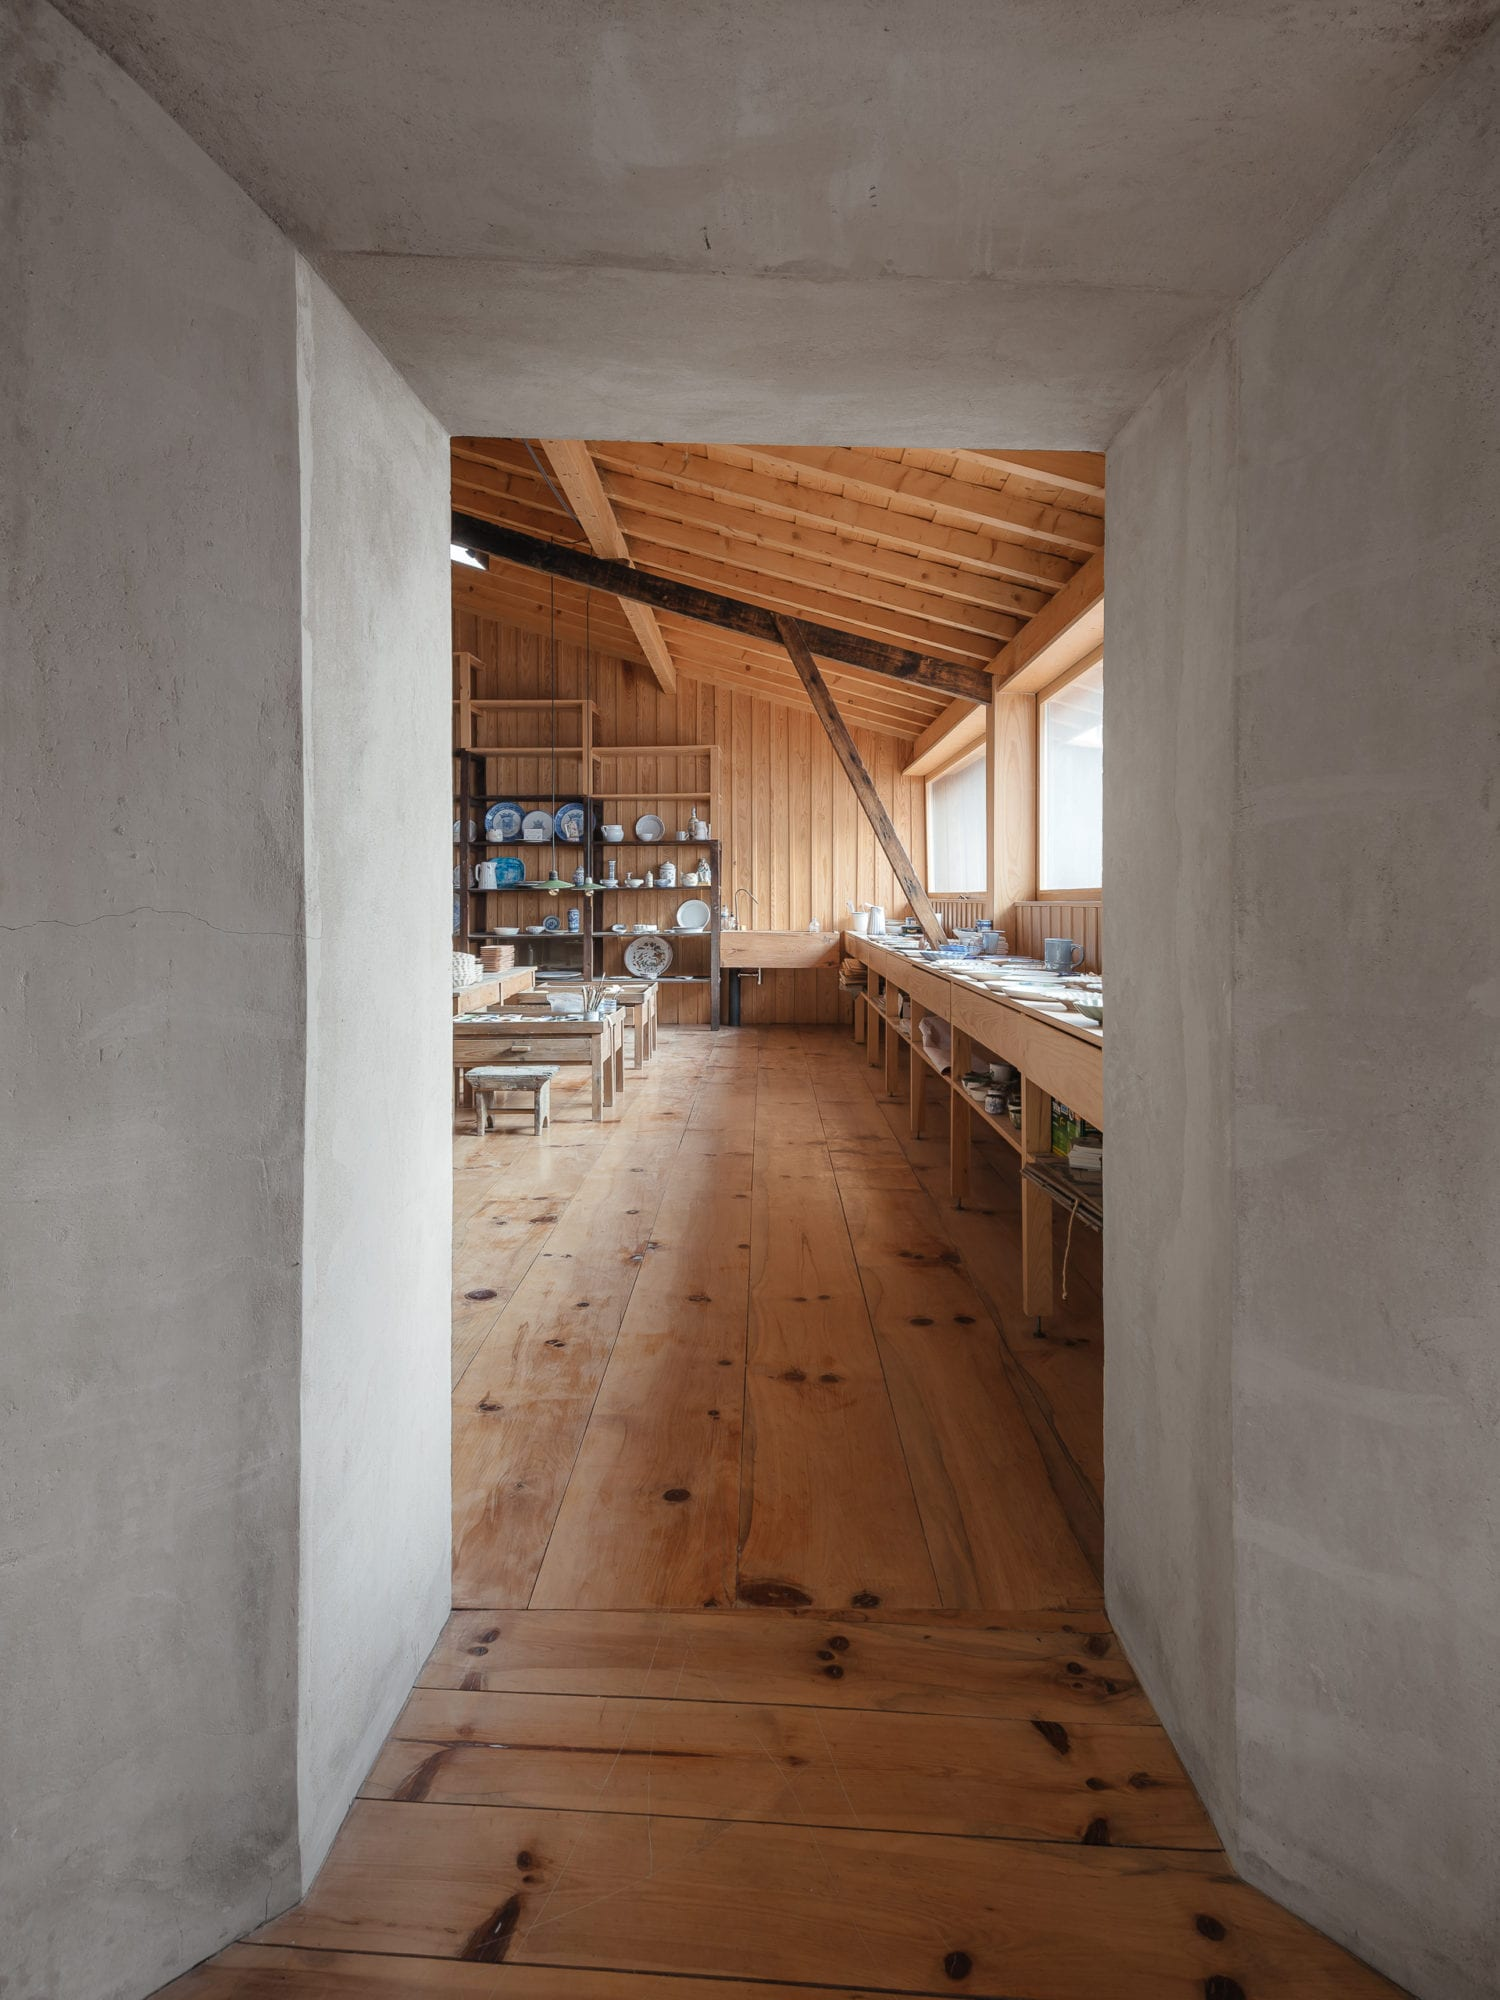 Luisa Bebiano And Atelier Do Corvo Renovation Old Ceramic Society Of Coimbra 18th Century Building Yellowtrace 13